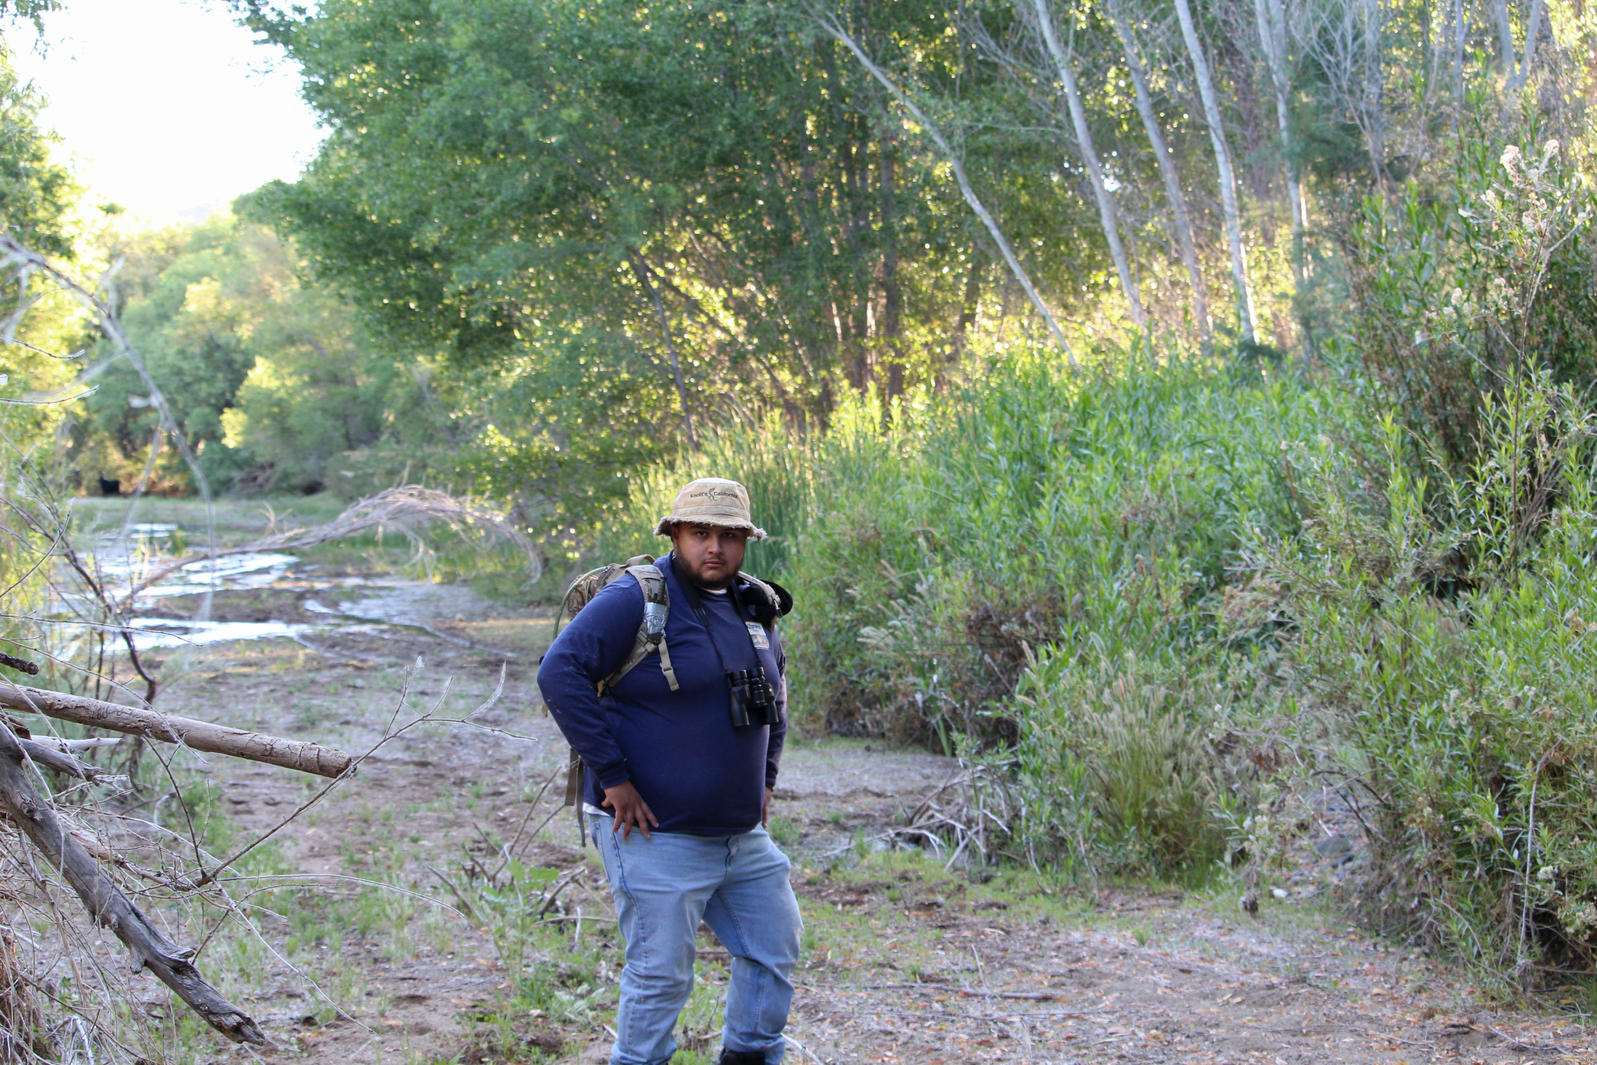 River Pathways intern Max Ayala poses with his field gear near the Agua Fria River.